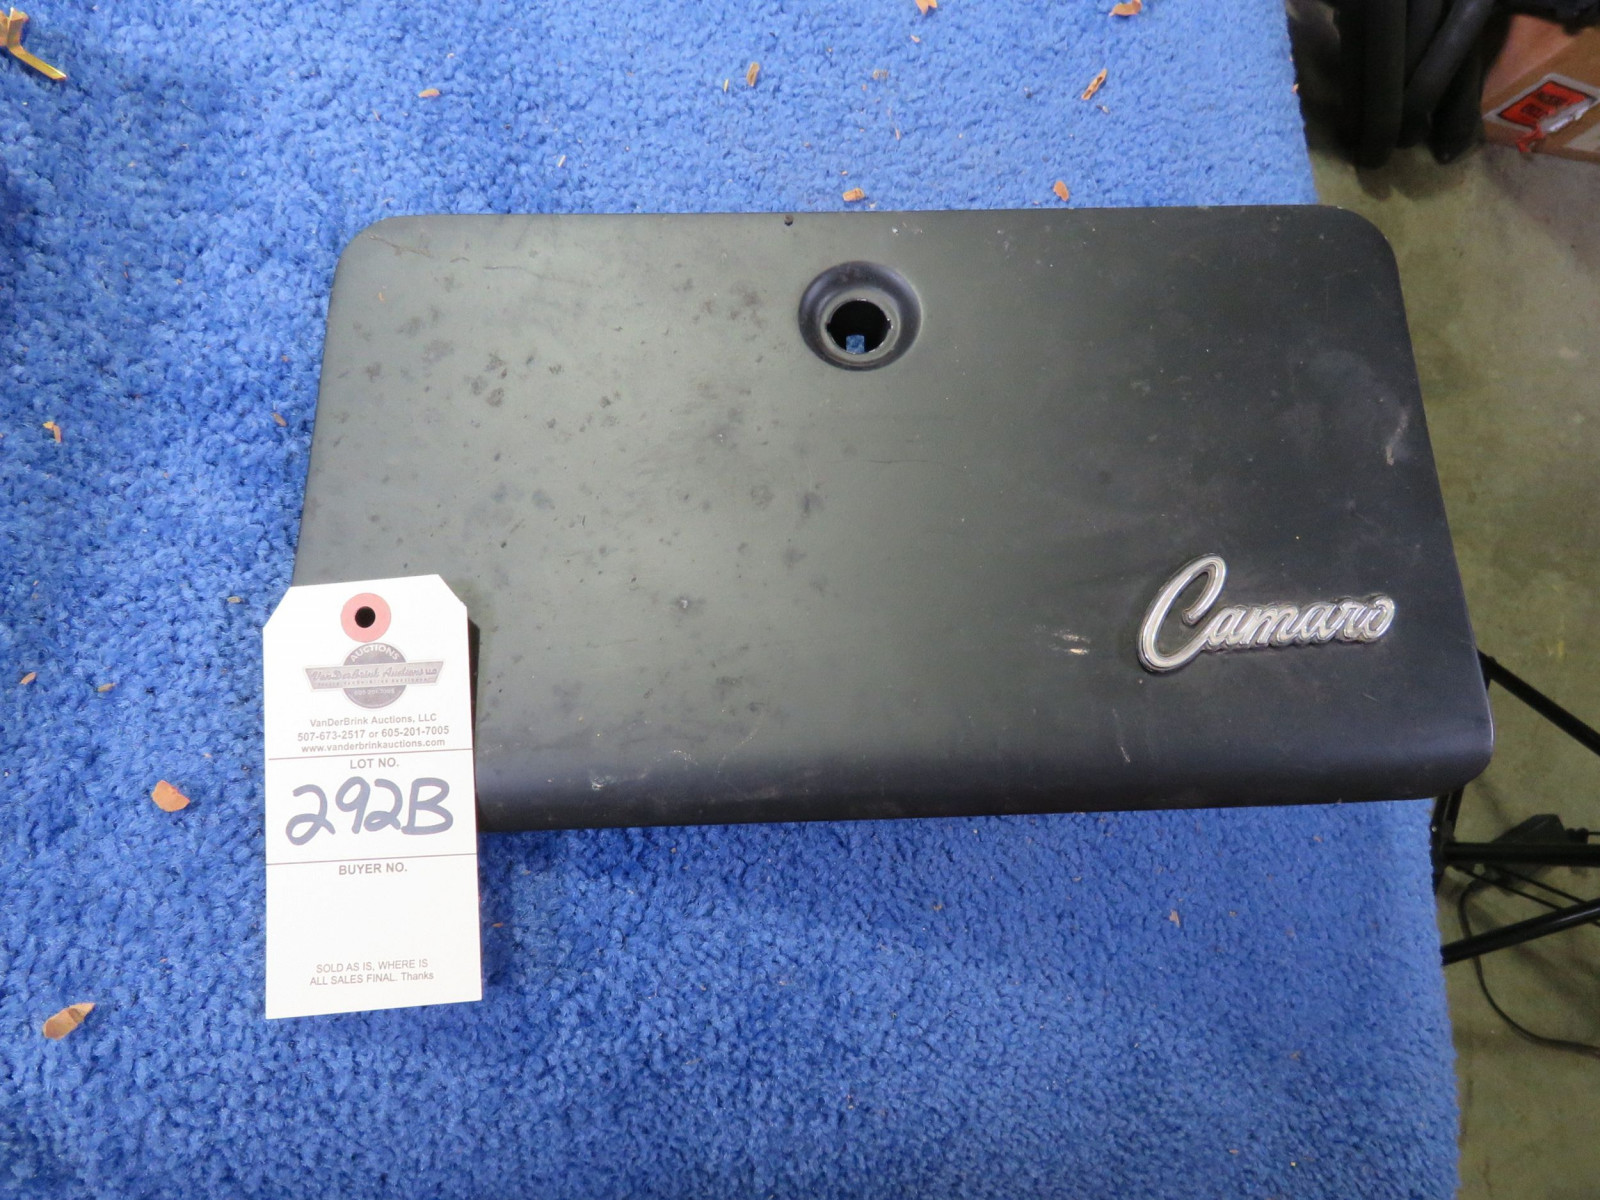 Chevrolet Camaro Glove Box Cover - Image 1